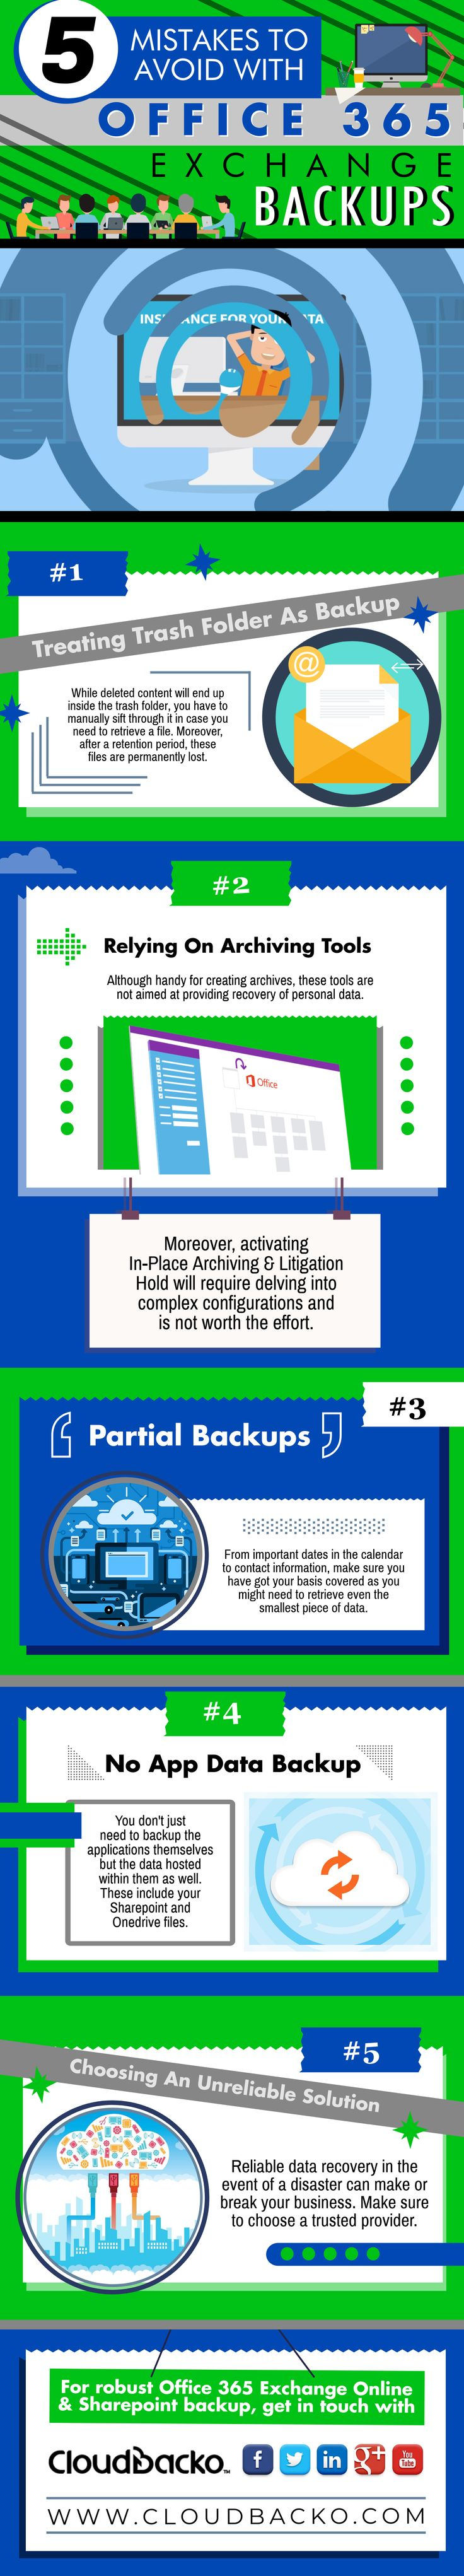 5 Mistakes you should avoid with Office 365 Exchange Backups !!